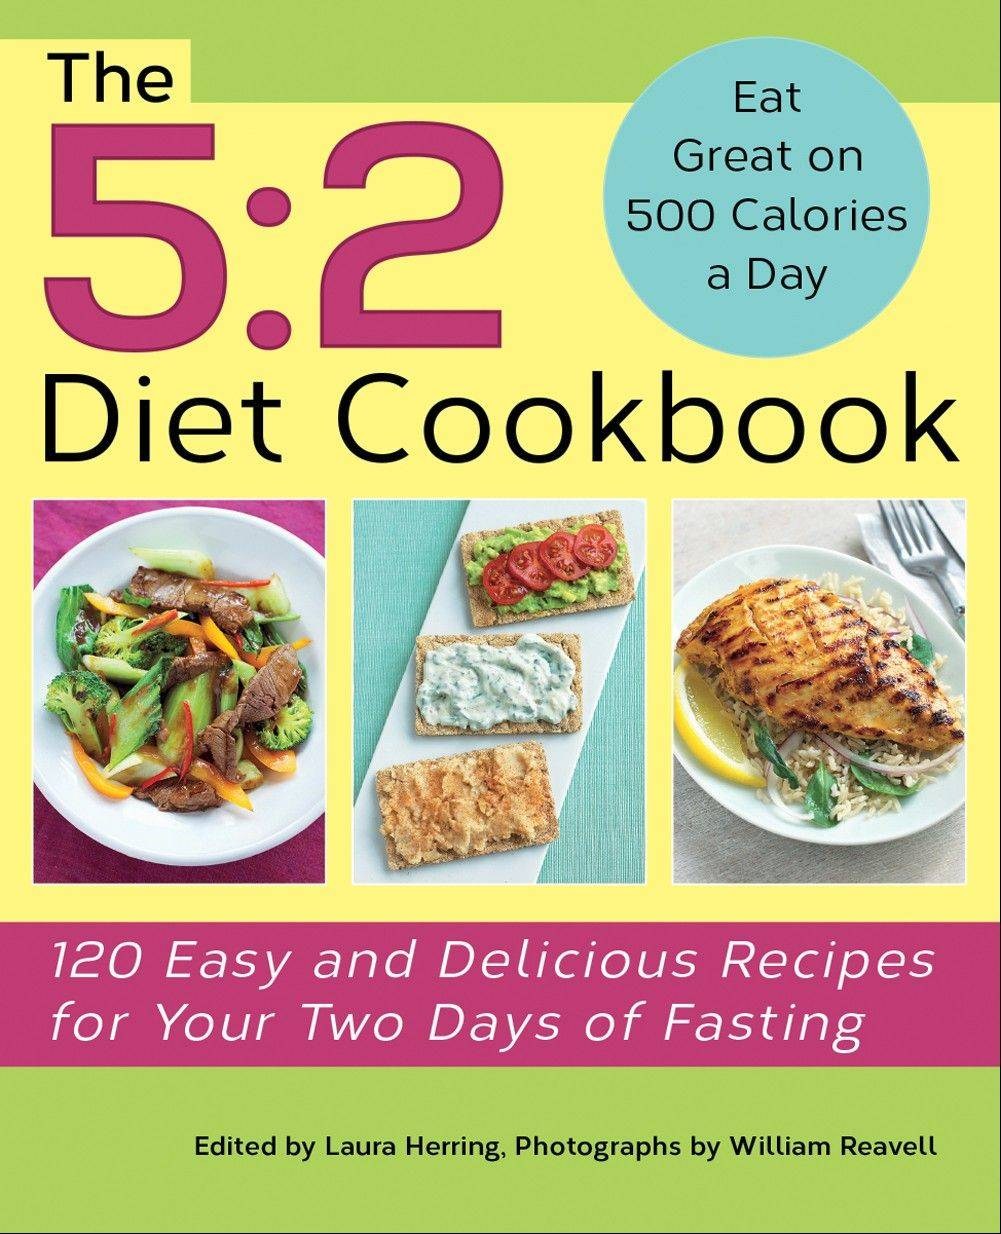 """The 5:2 Diet Cookbook"" by Kate Harrison"